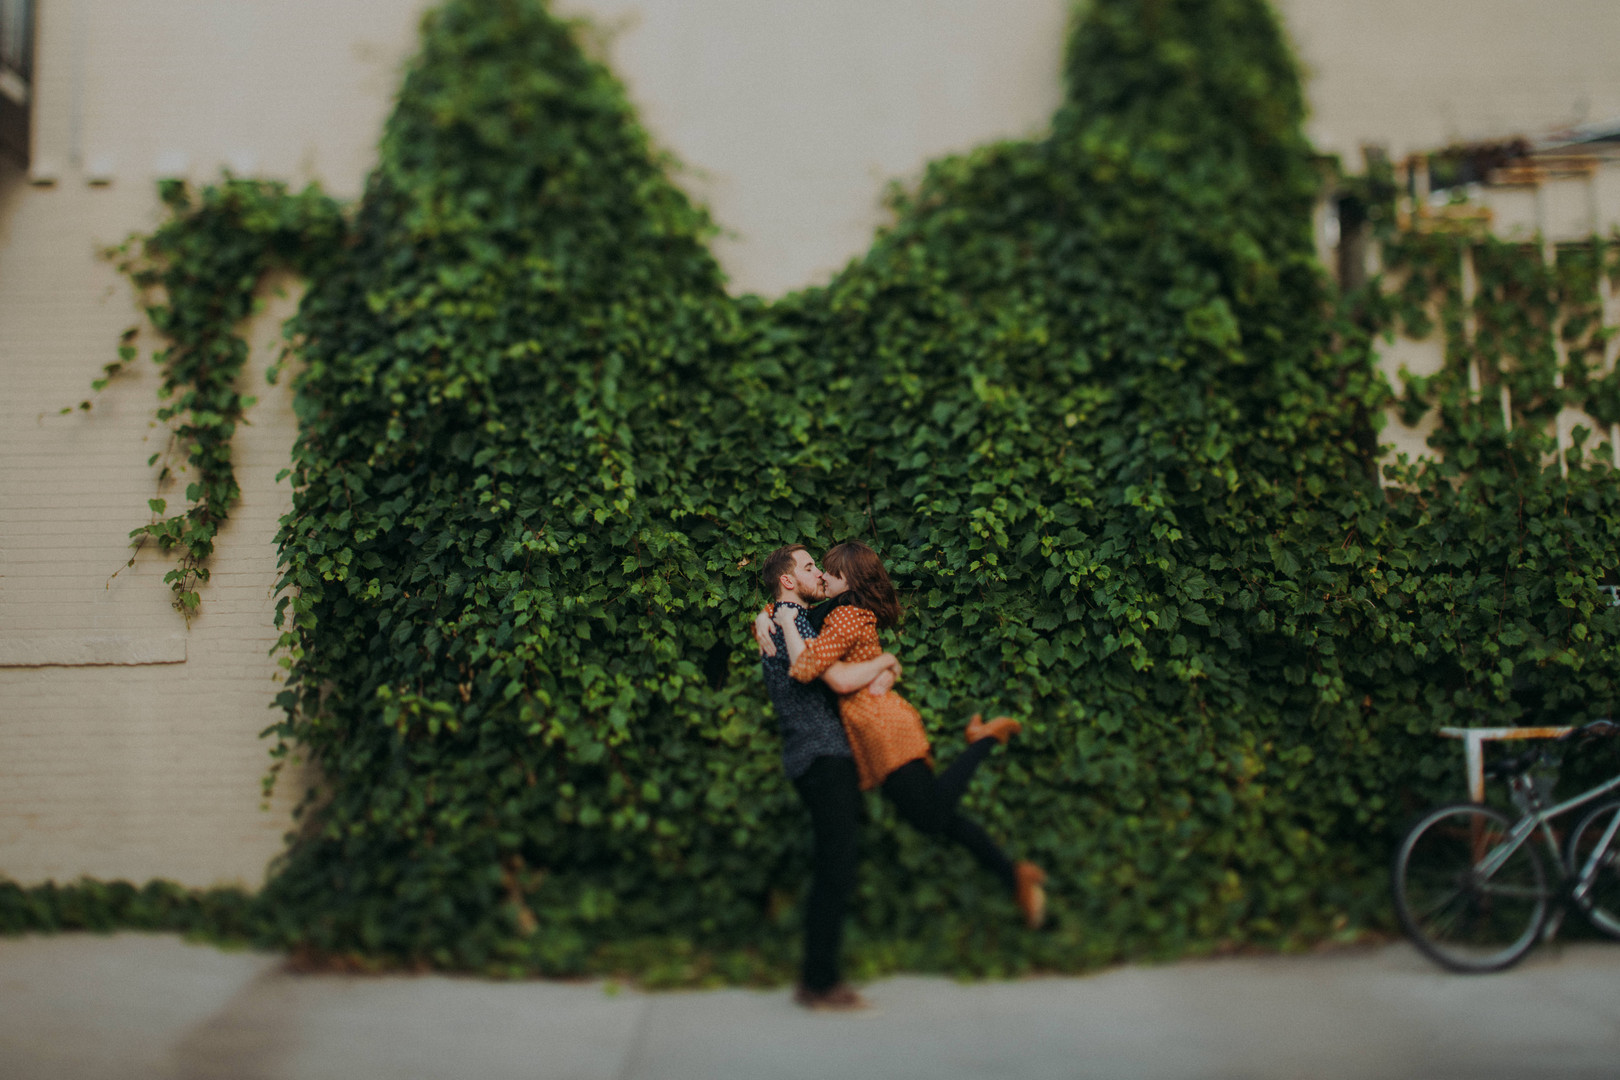 A man picks a woman up in front of a wall of ivy at a Downtown Stevens Point engagement session